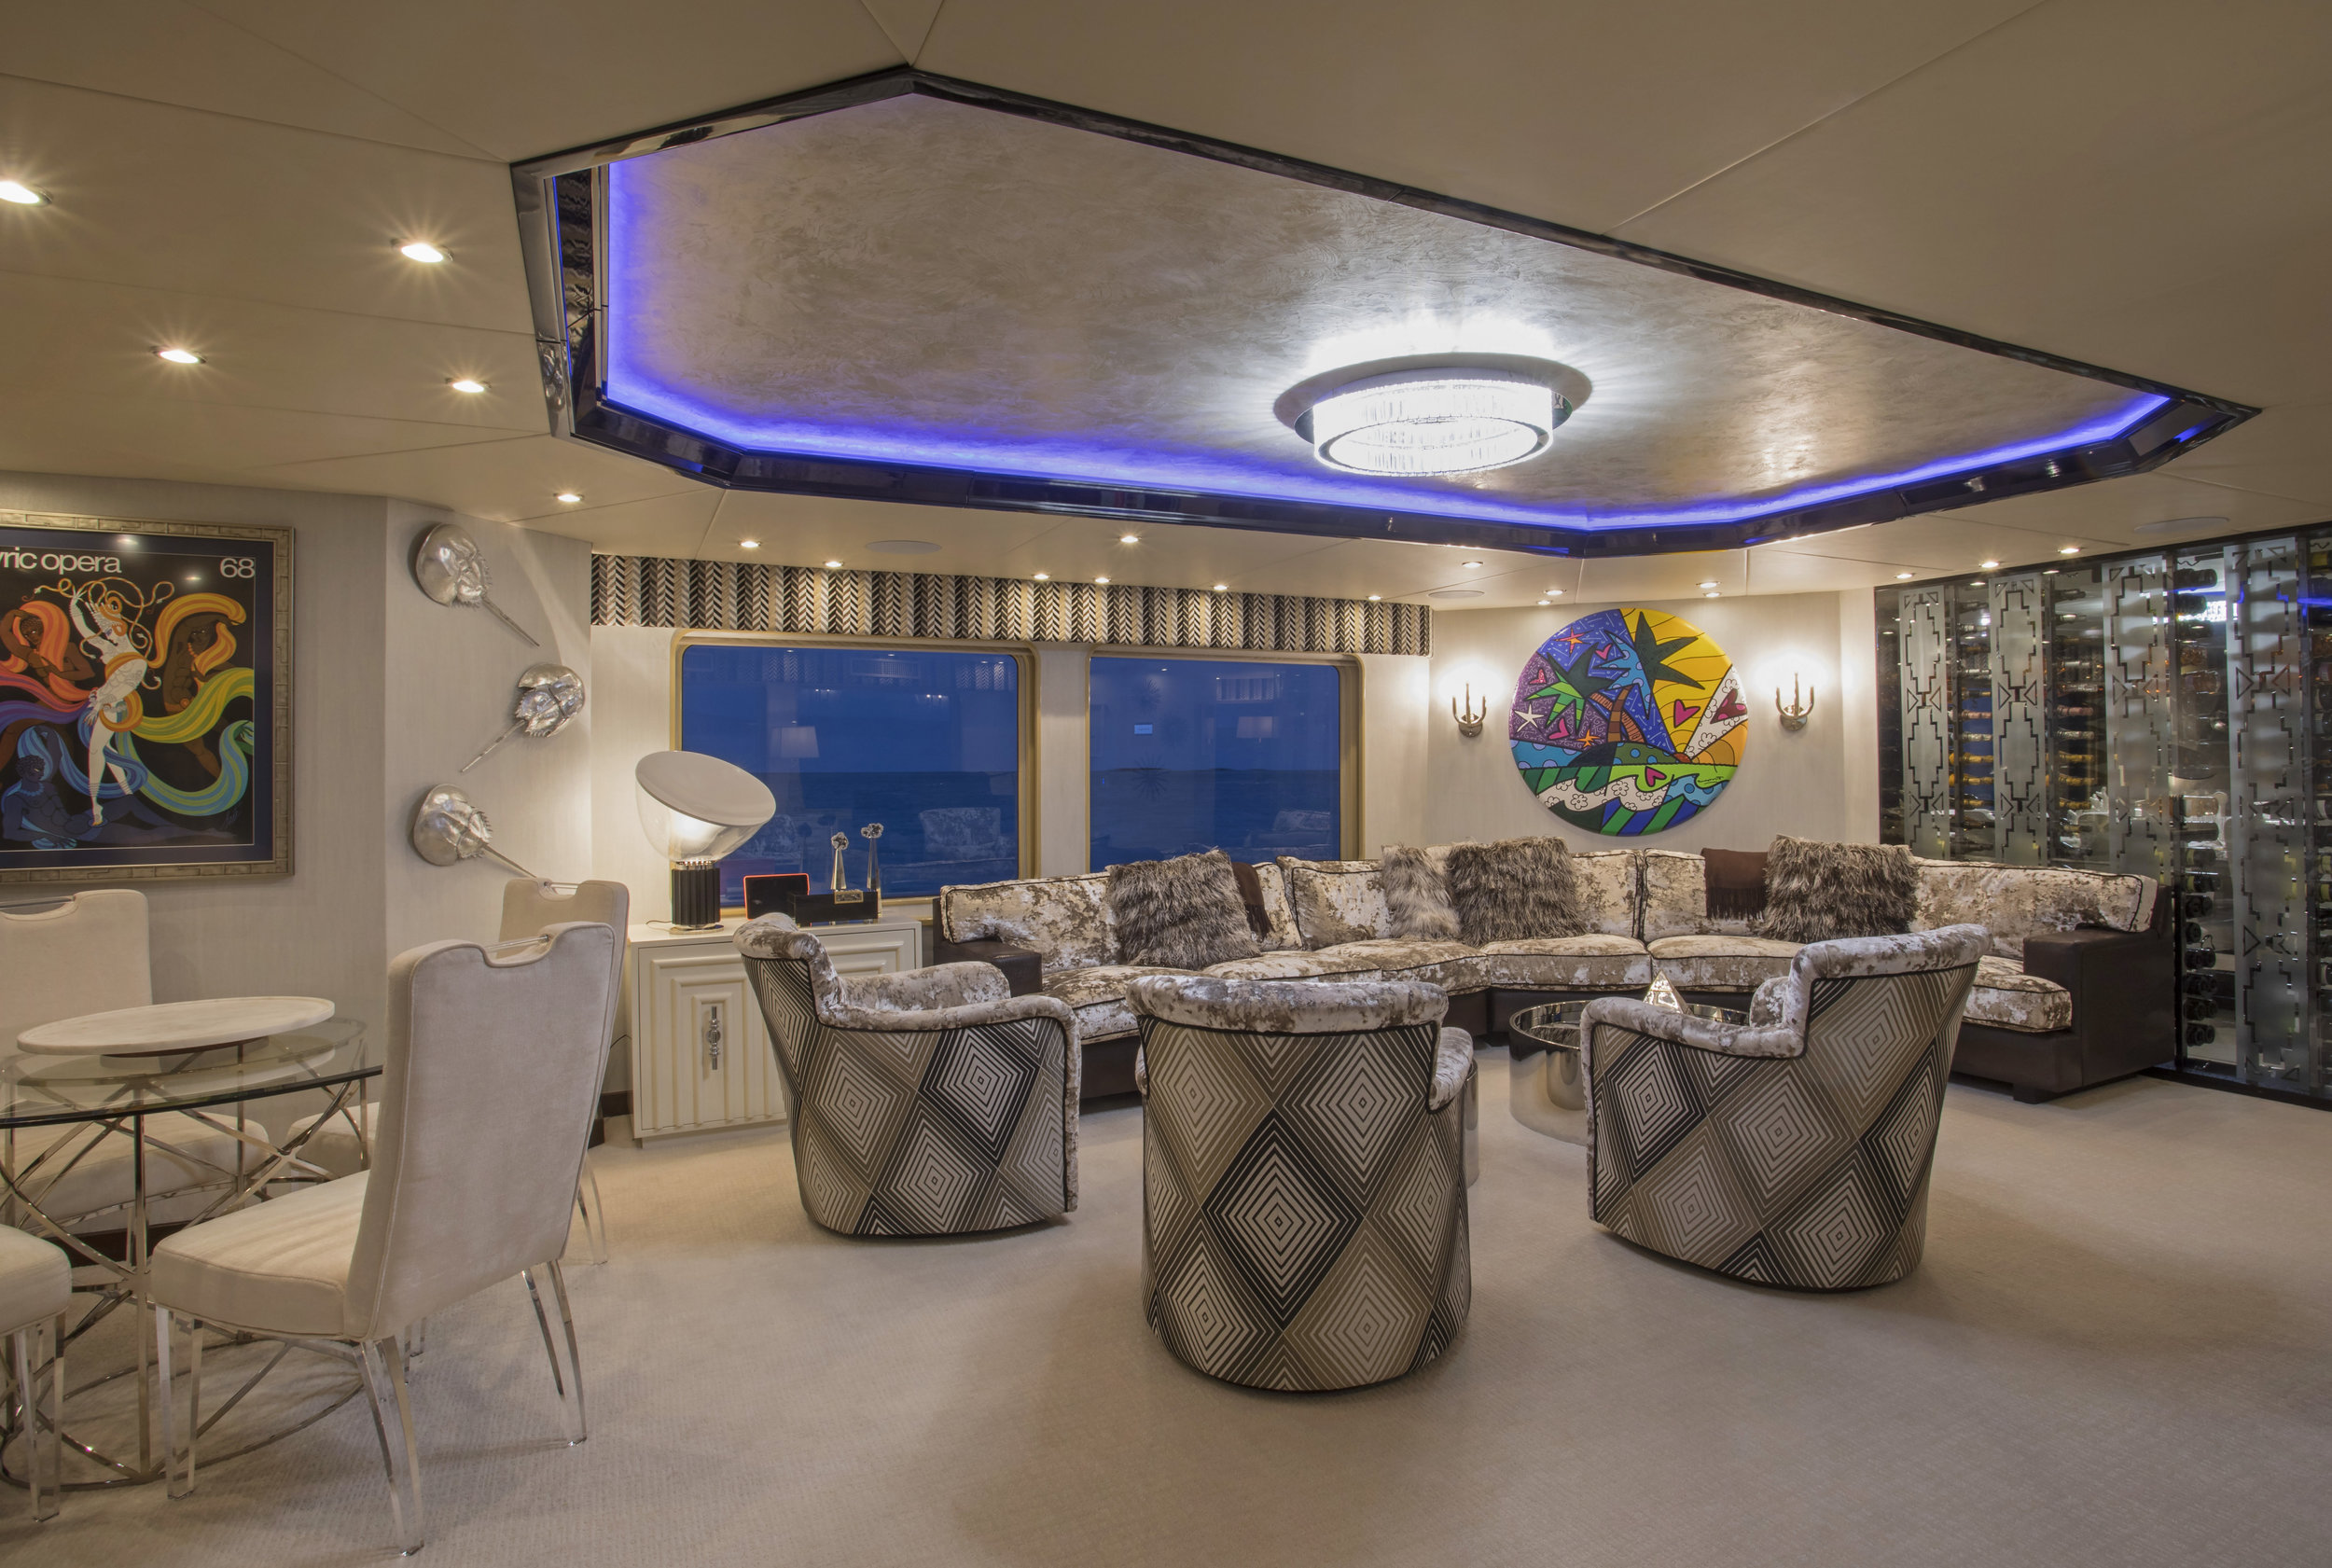 normandie-yacht-sweet-escape-art-deco-interiors-charter-first-class-luxury-design-modern-erte